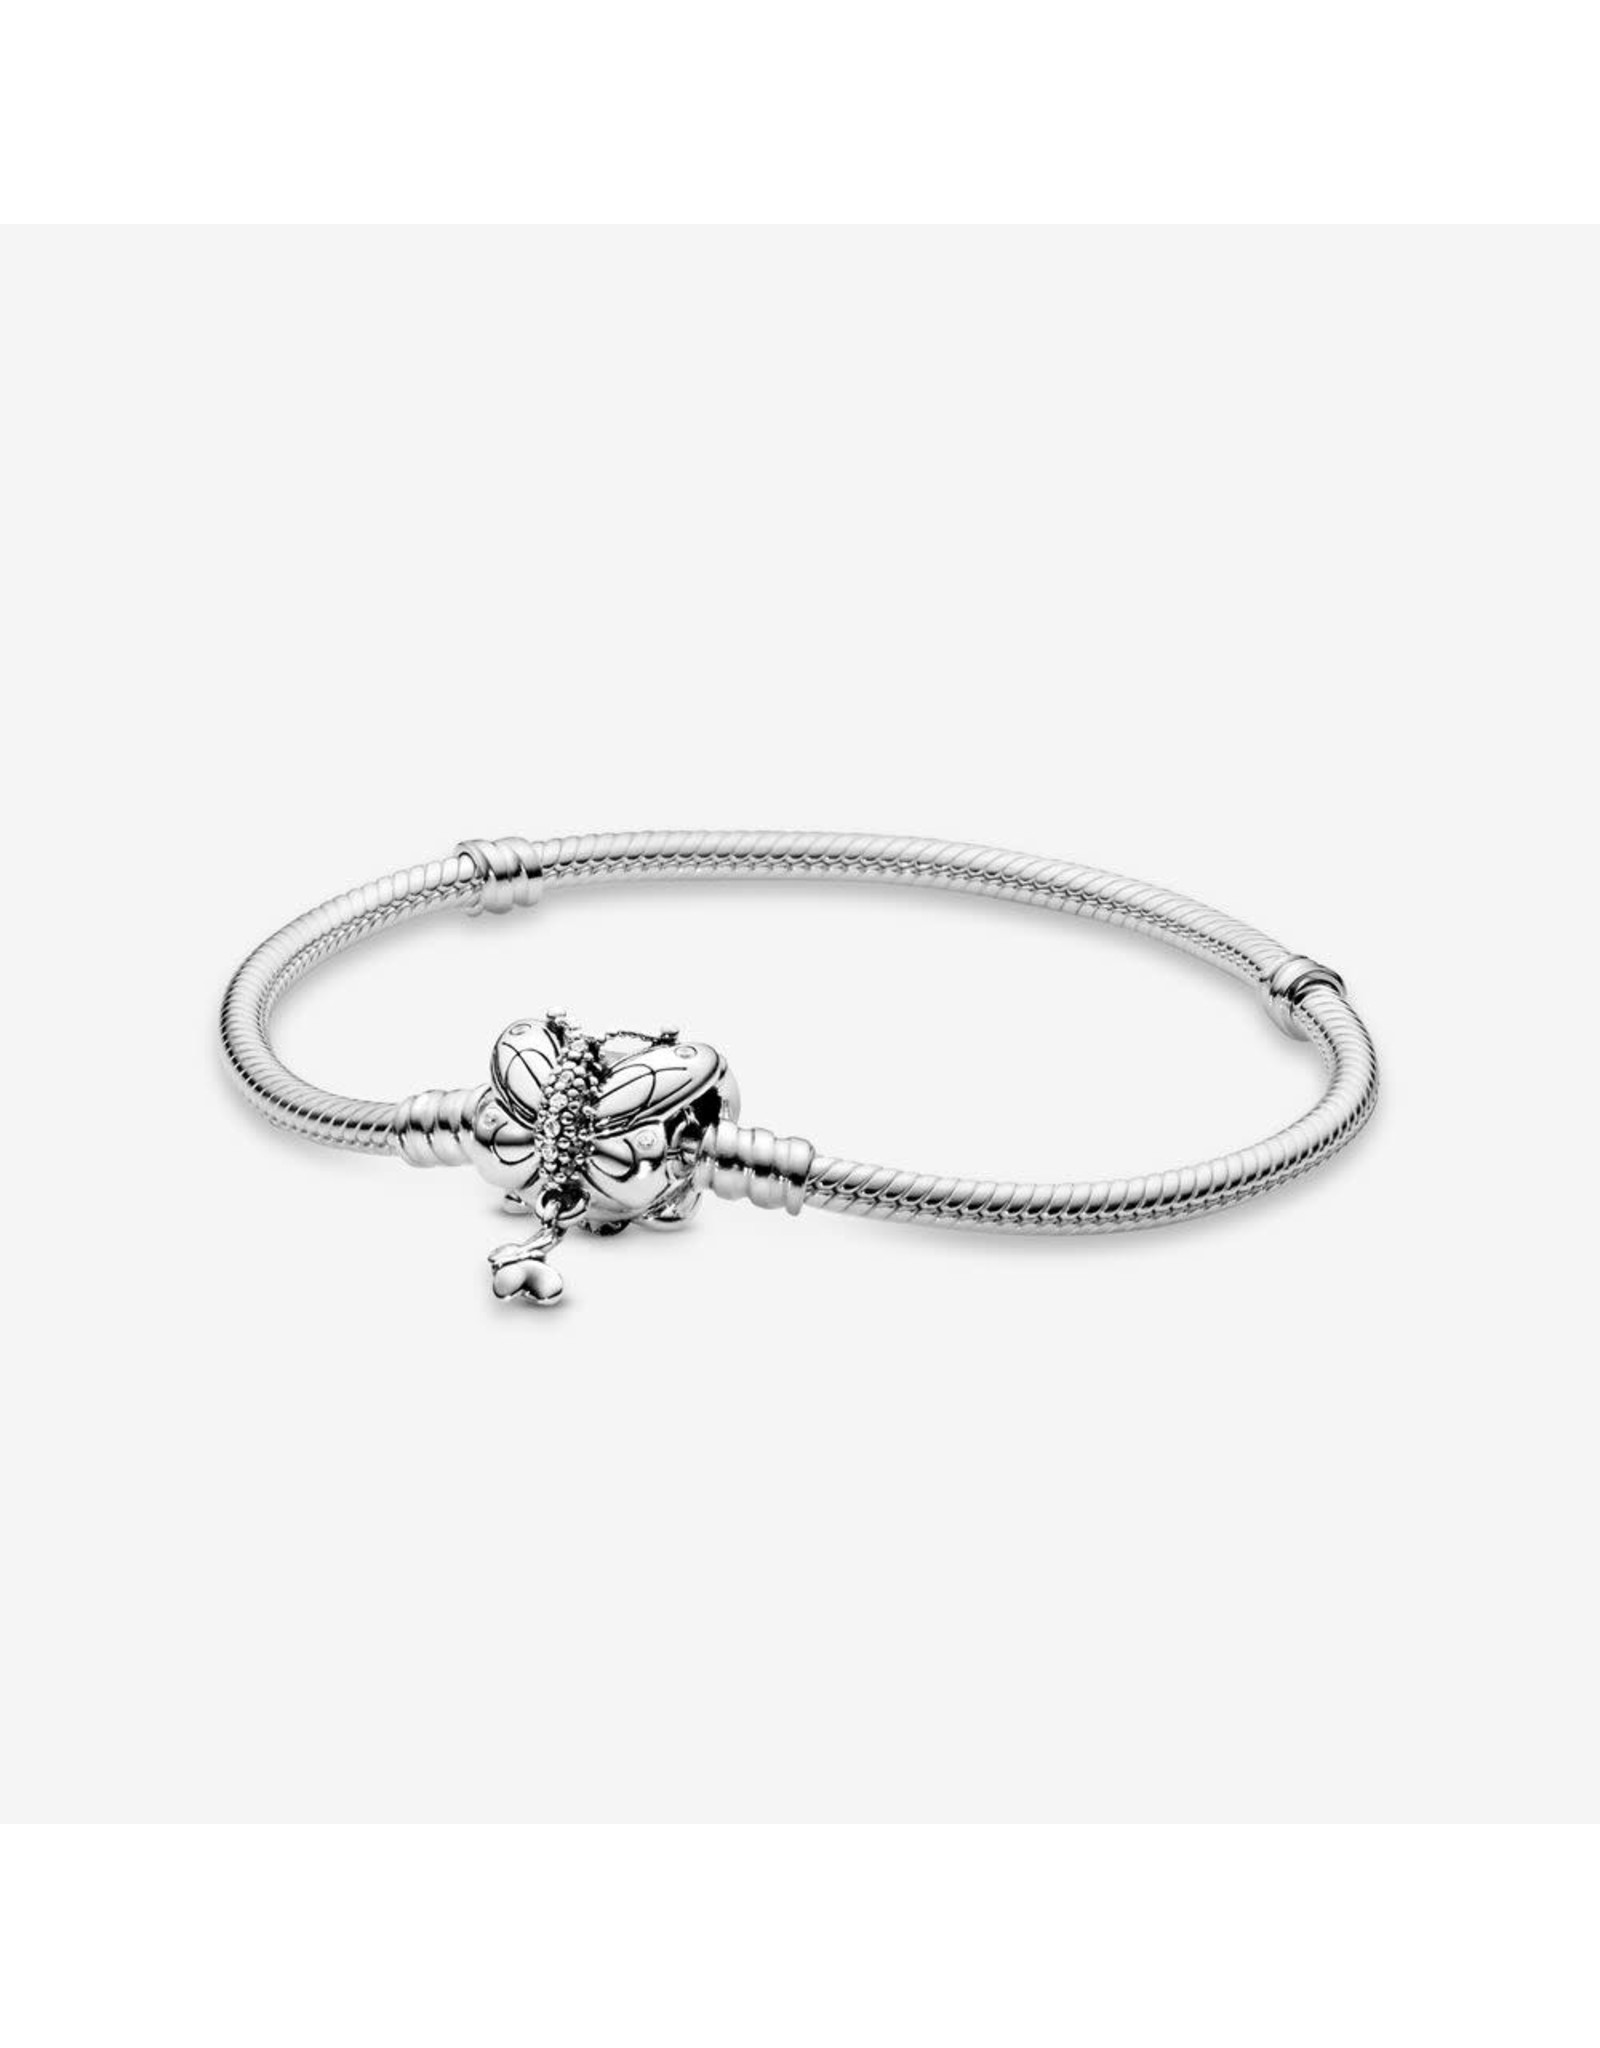 Pandora Pandora Snake chain bracelet in sterling silver and butterfly clasp with 30 bead-set and 8 flush-set clear cubic zirconia